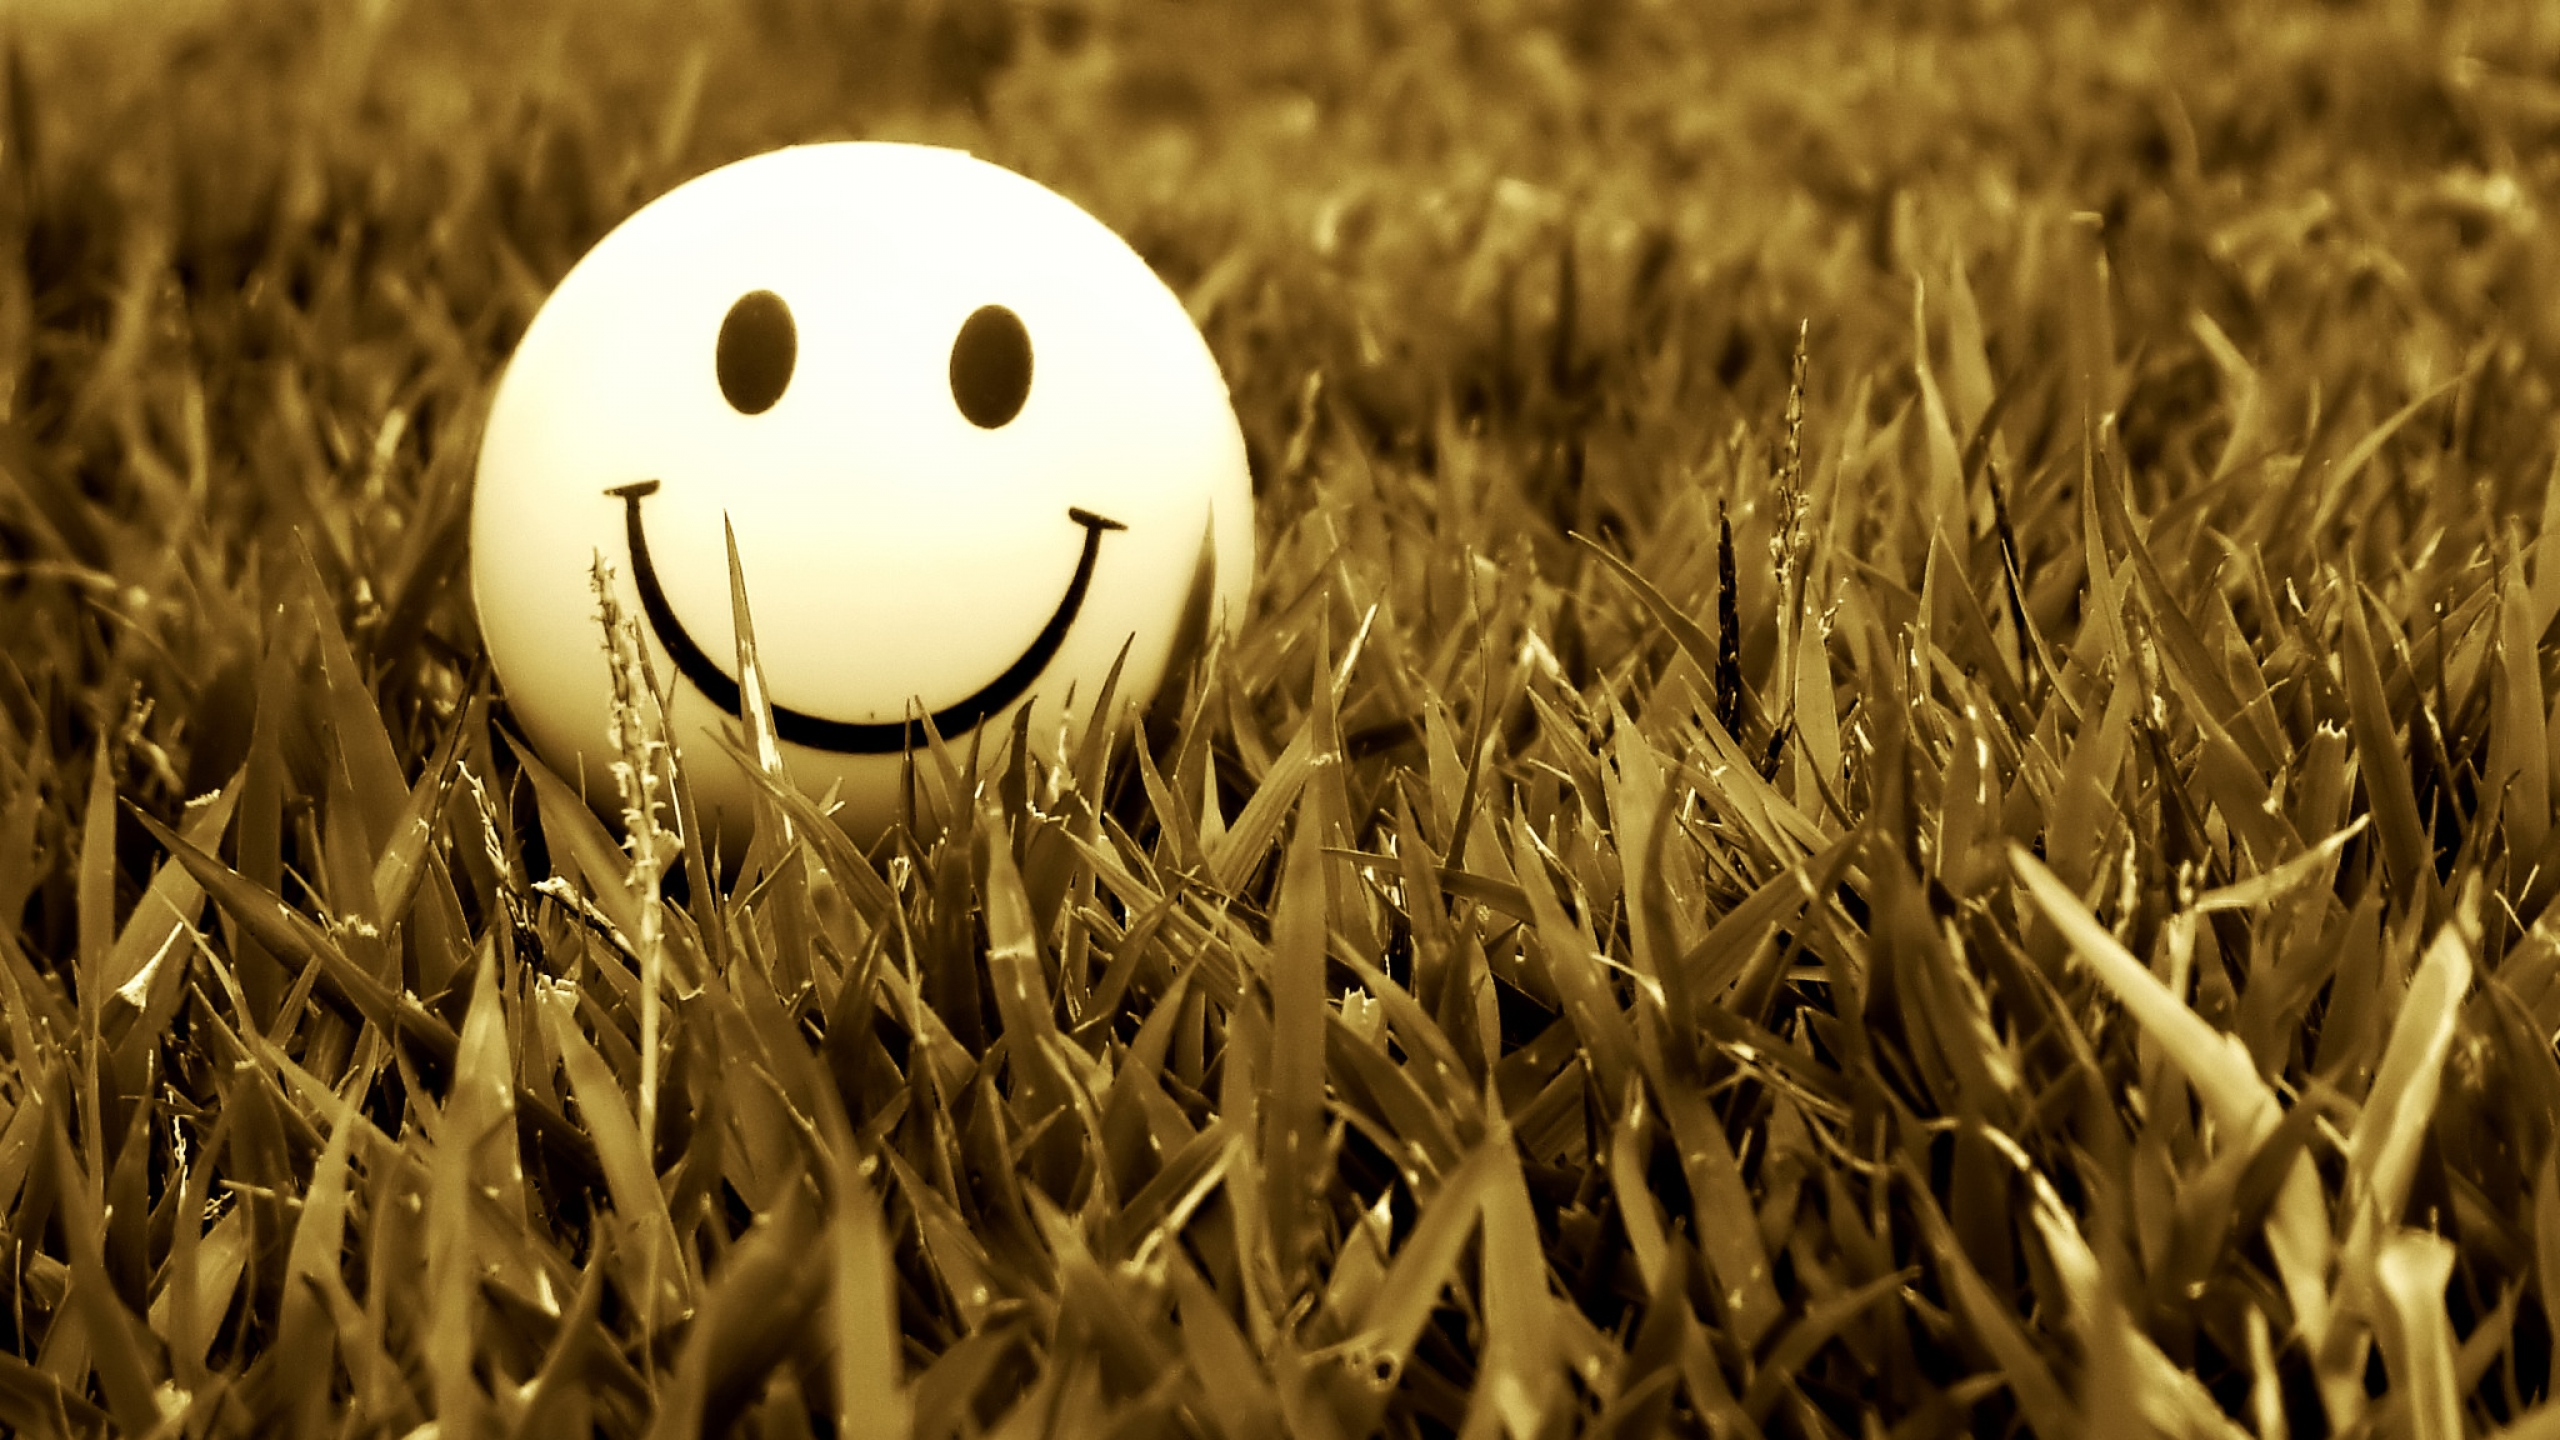 6803186-mood-smile-background